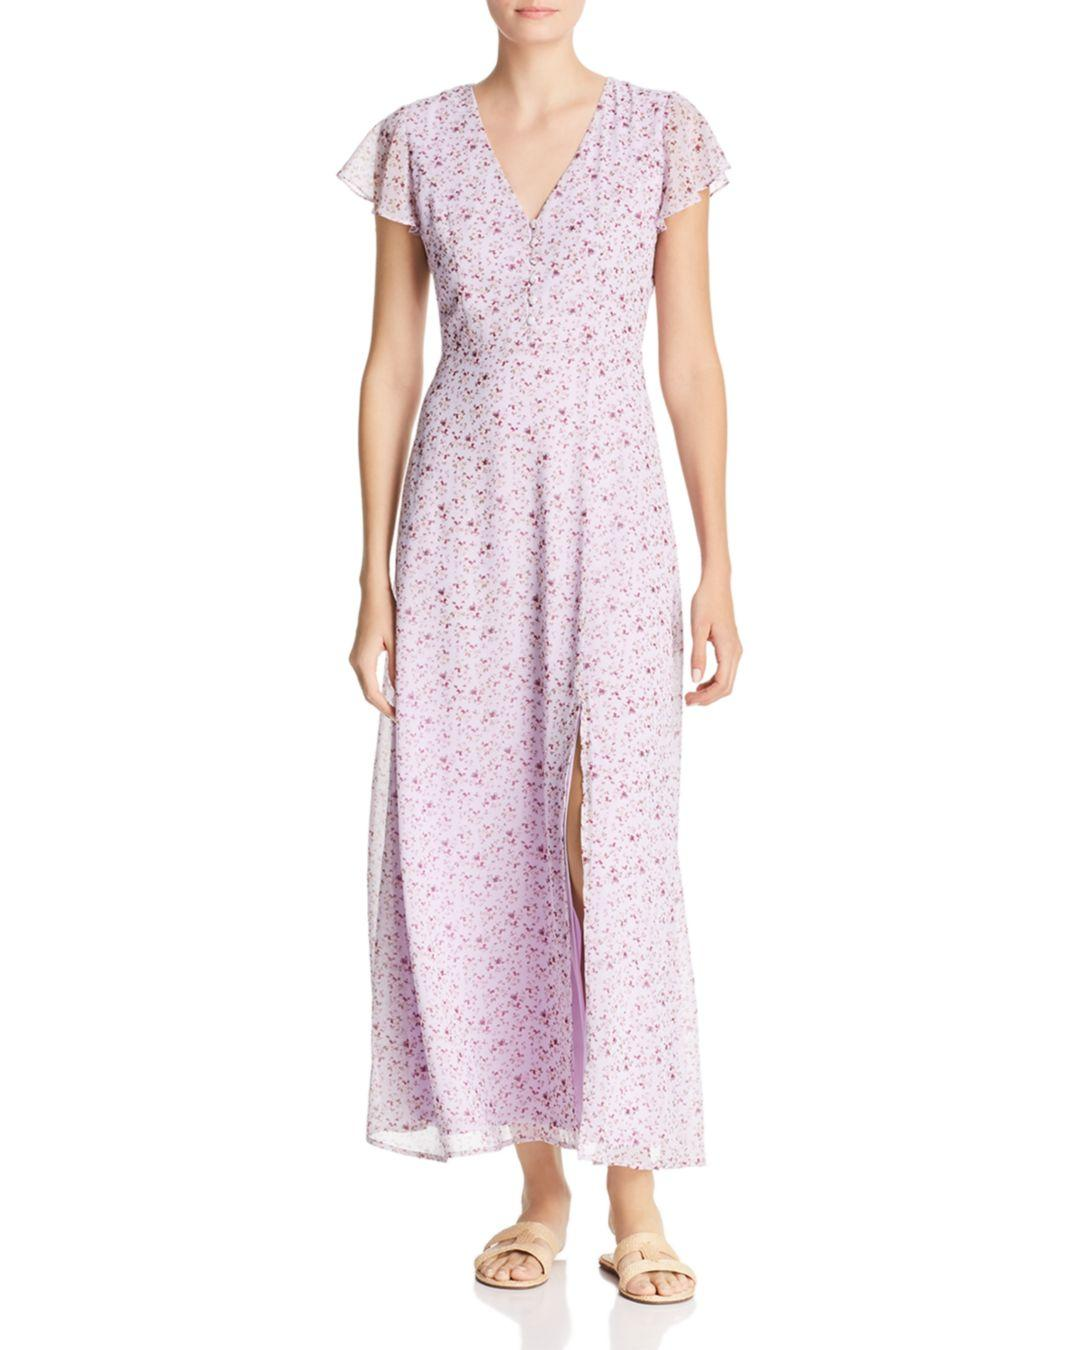 spring bridal shower dress purple floral print maxi